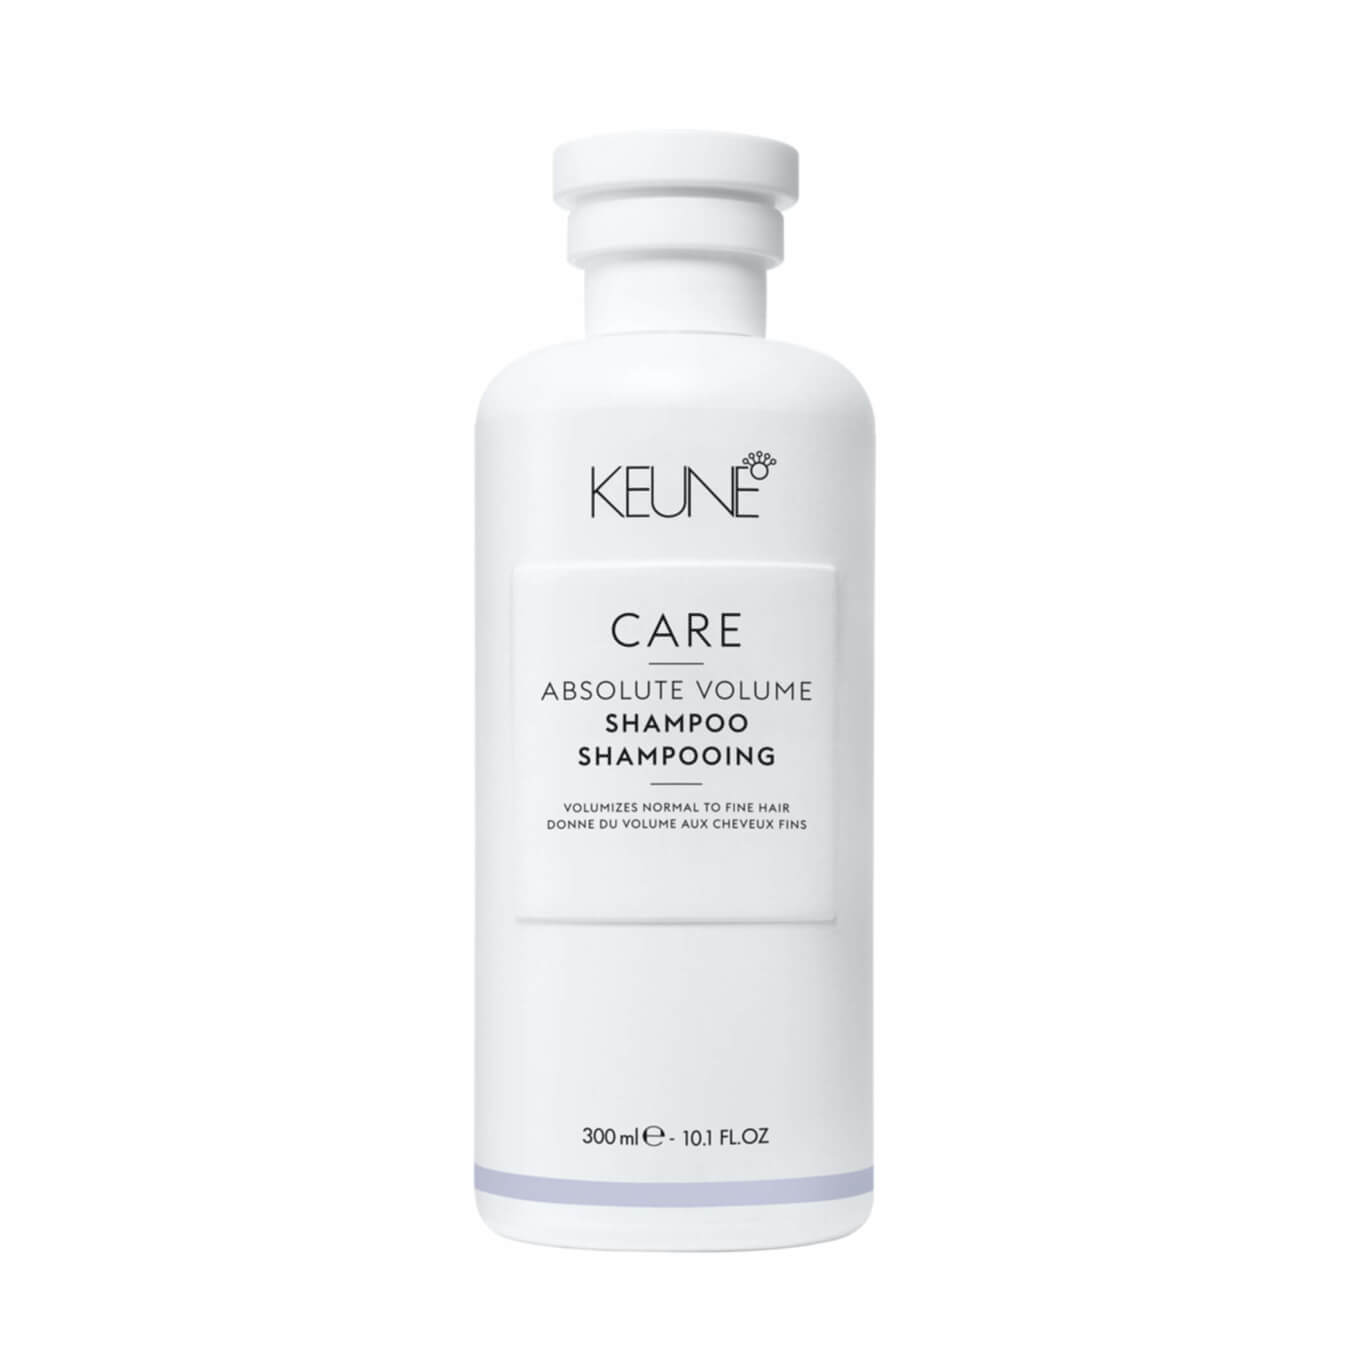 Kauf Keune Care Absolute Volume Shampoo 300ml